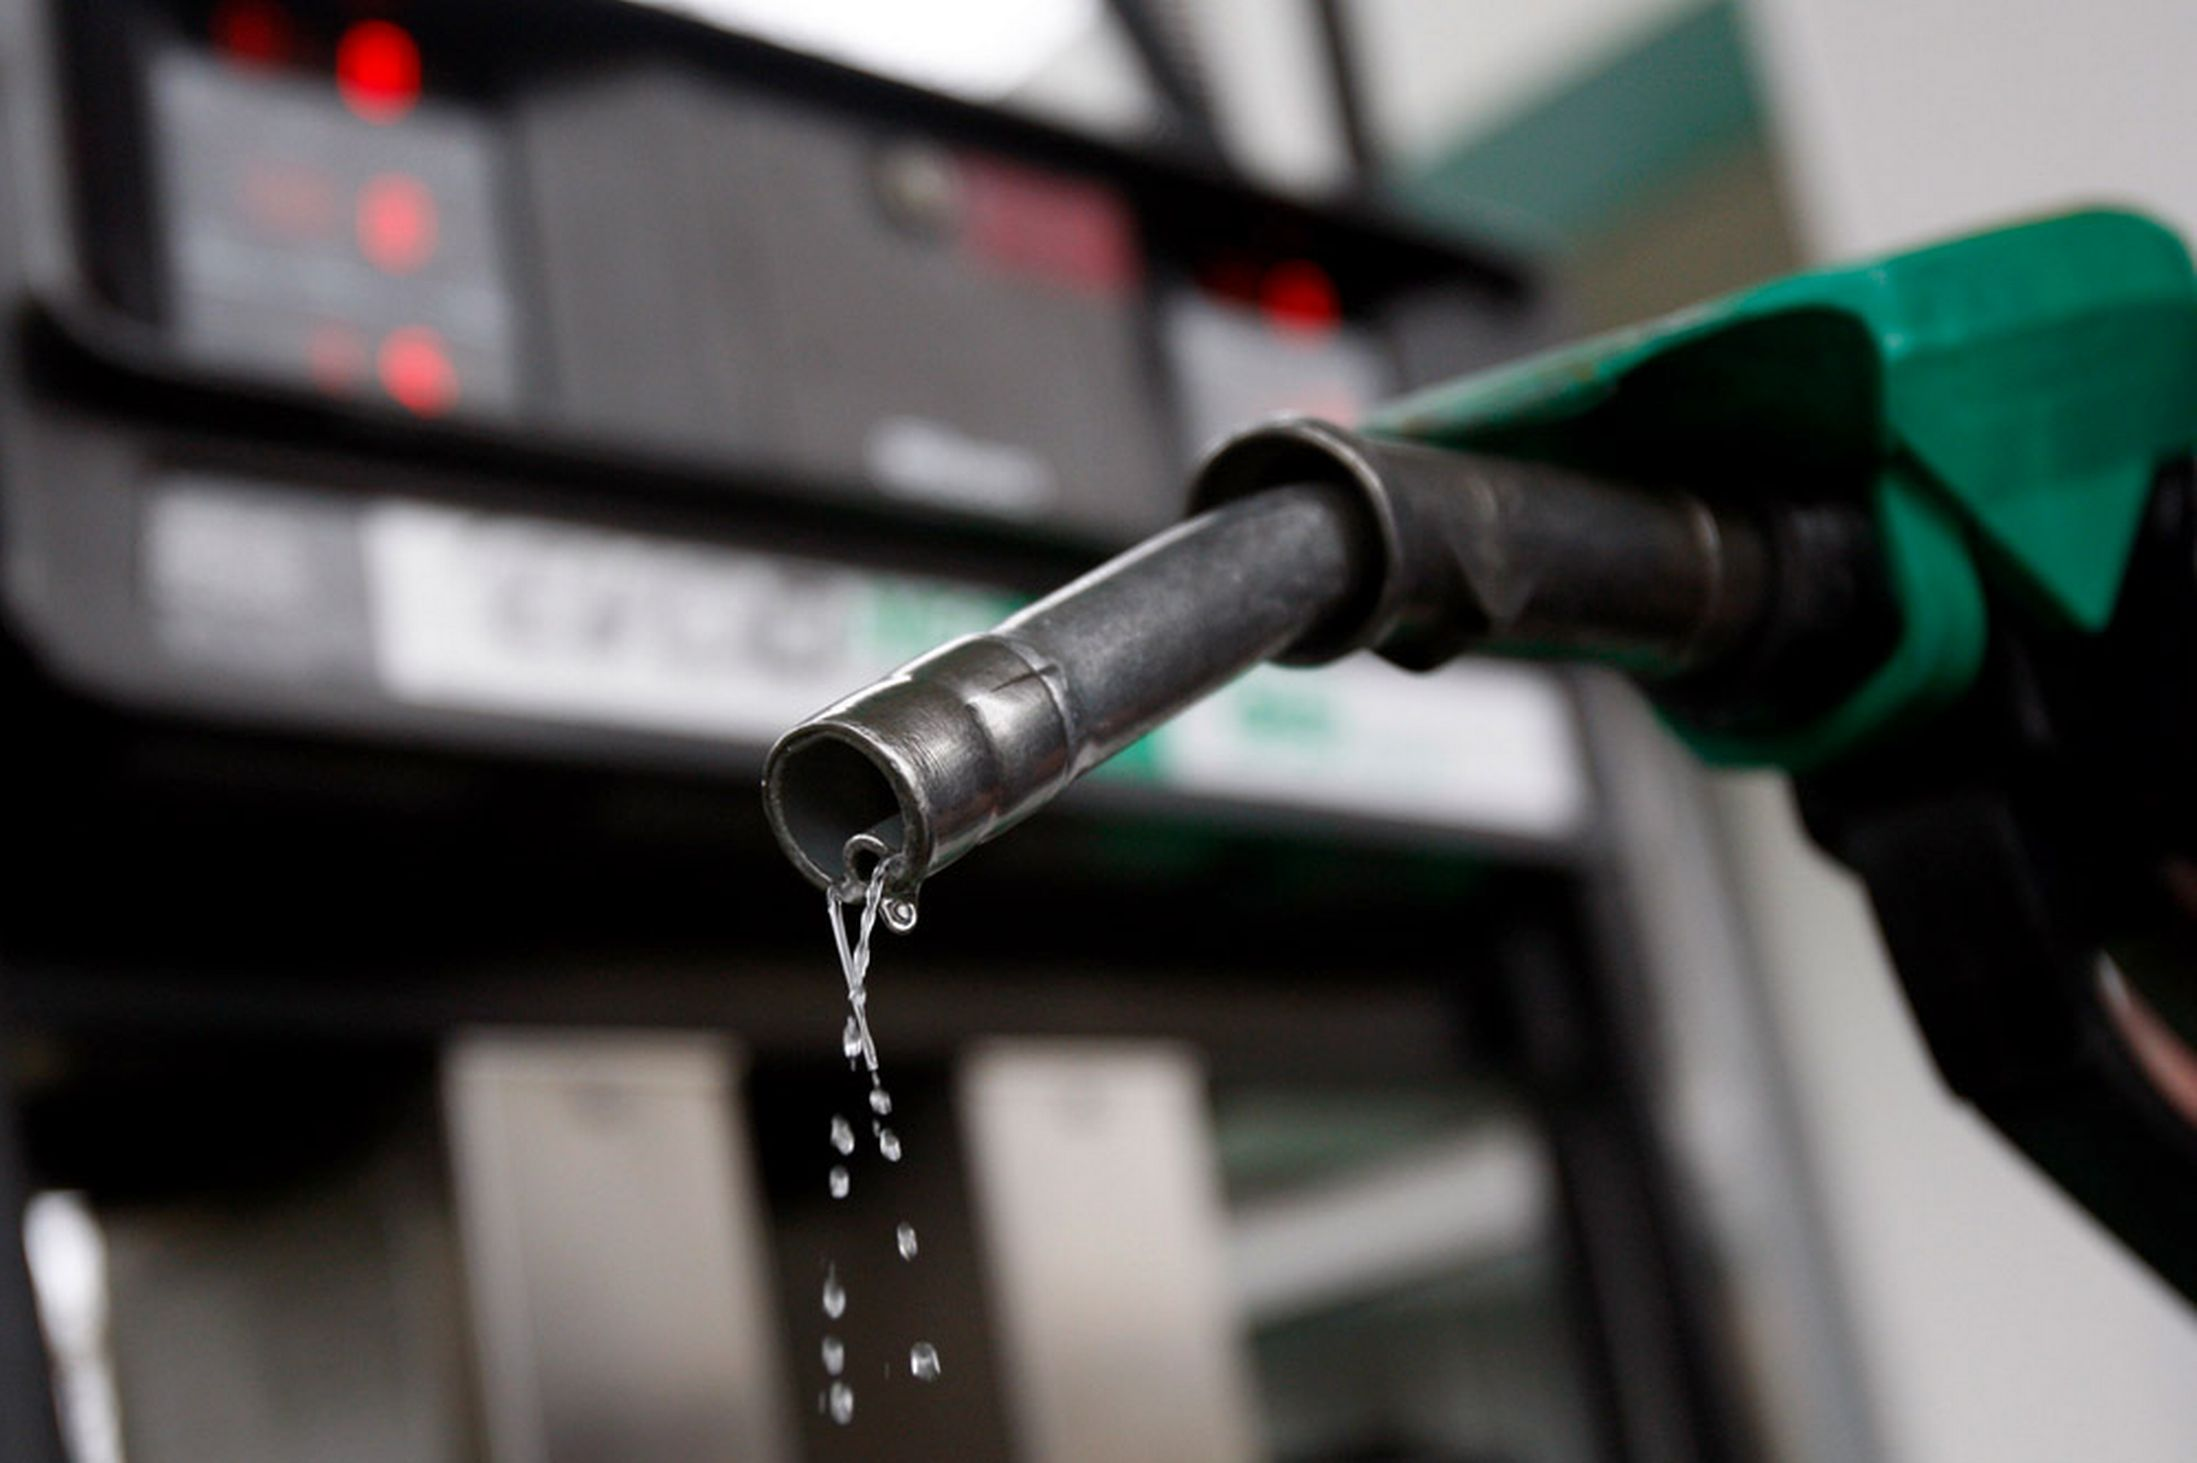 DPR: Seals Filling Stations Selling Above N145